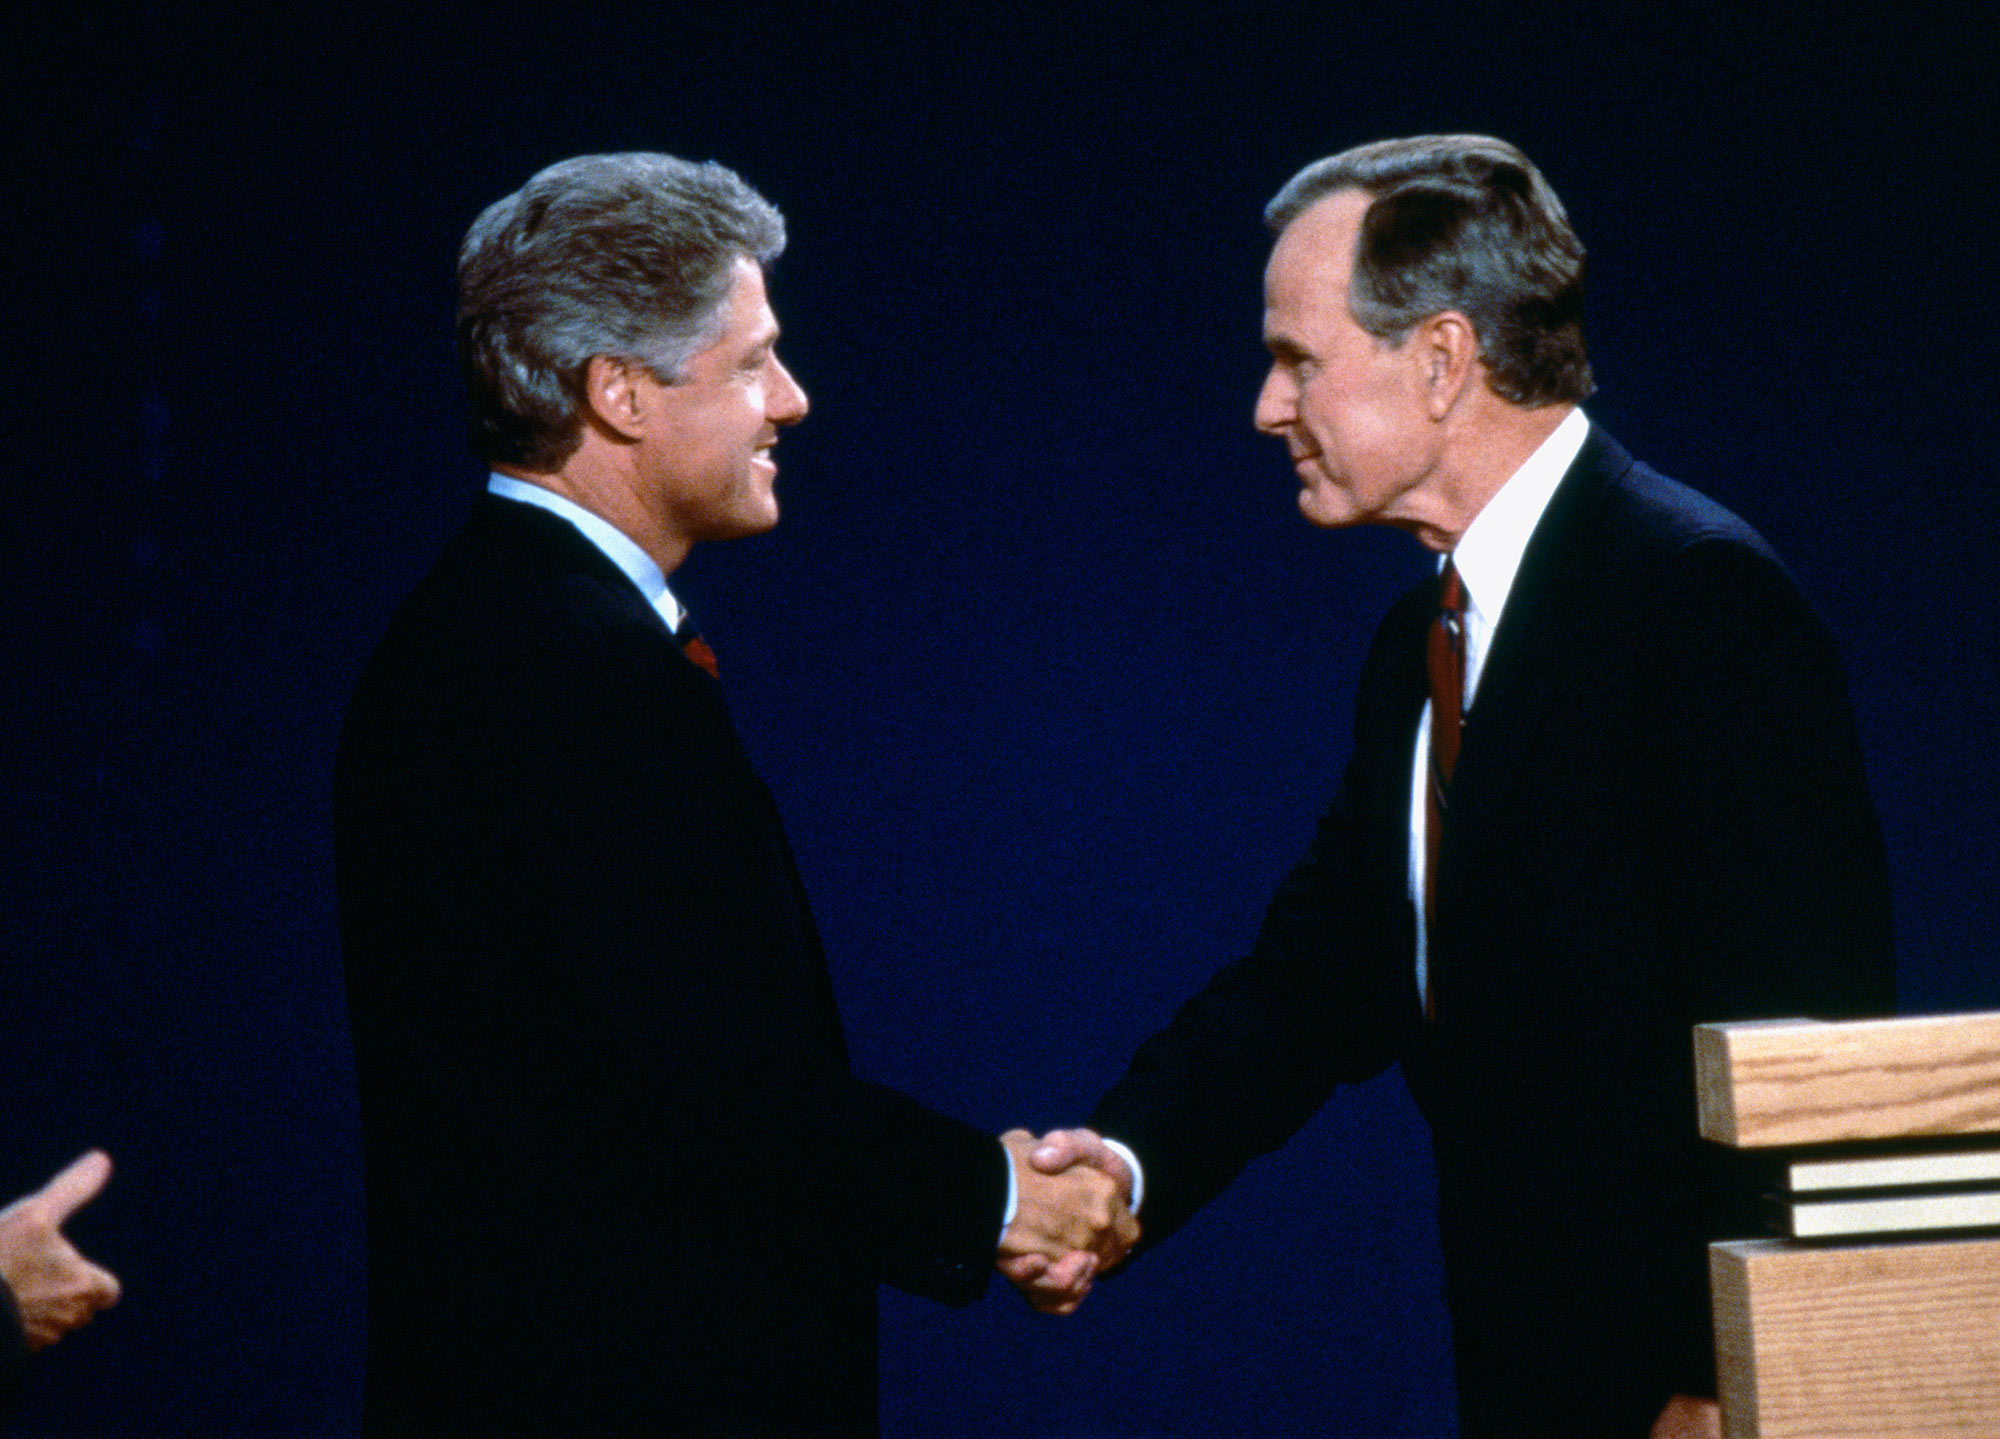 Televised debate between incumbent President Republican George H. W. Bush, Democrat Bill Clinton, the Governor of Arkansas; and independent candidate Ross Perot, a Texas businessman. (Photo by Ira Wyman/Sygma via Getty Images)